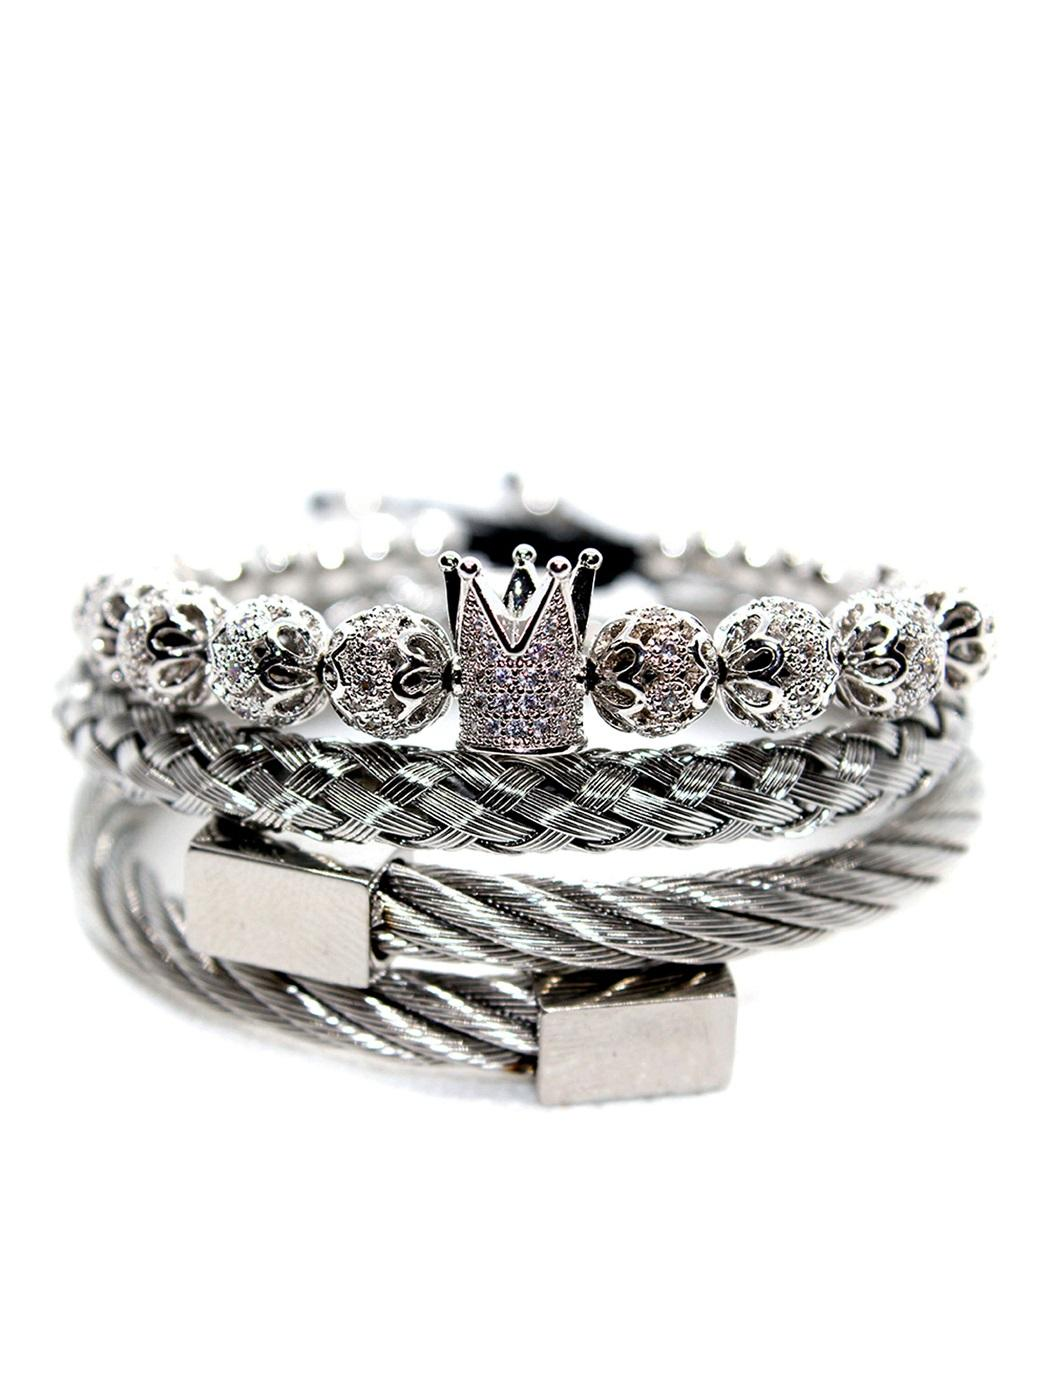 Toronto, Ontario, Montreal, Quebec, Vancouver, British Columbia, Calgary, Alberta, Edmonton, Alberta, Canada, King Crown Bracelet Set, King Crown Bracelets, King Queen Crown Bracelet, Men's Diamond Bracelet In Stainless Steel, Men's Diamond Jewelry For Sale, Men's Double Braided Bracelet, Men's King Crown Bracelet, Mens Beaded Bracelets Jewelry, Mens Bracelet, Mens Bracelet Online, New York Bracelet Silver Jewelry for men